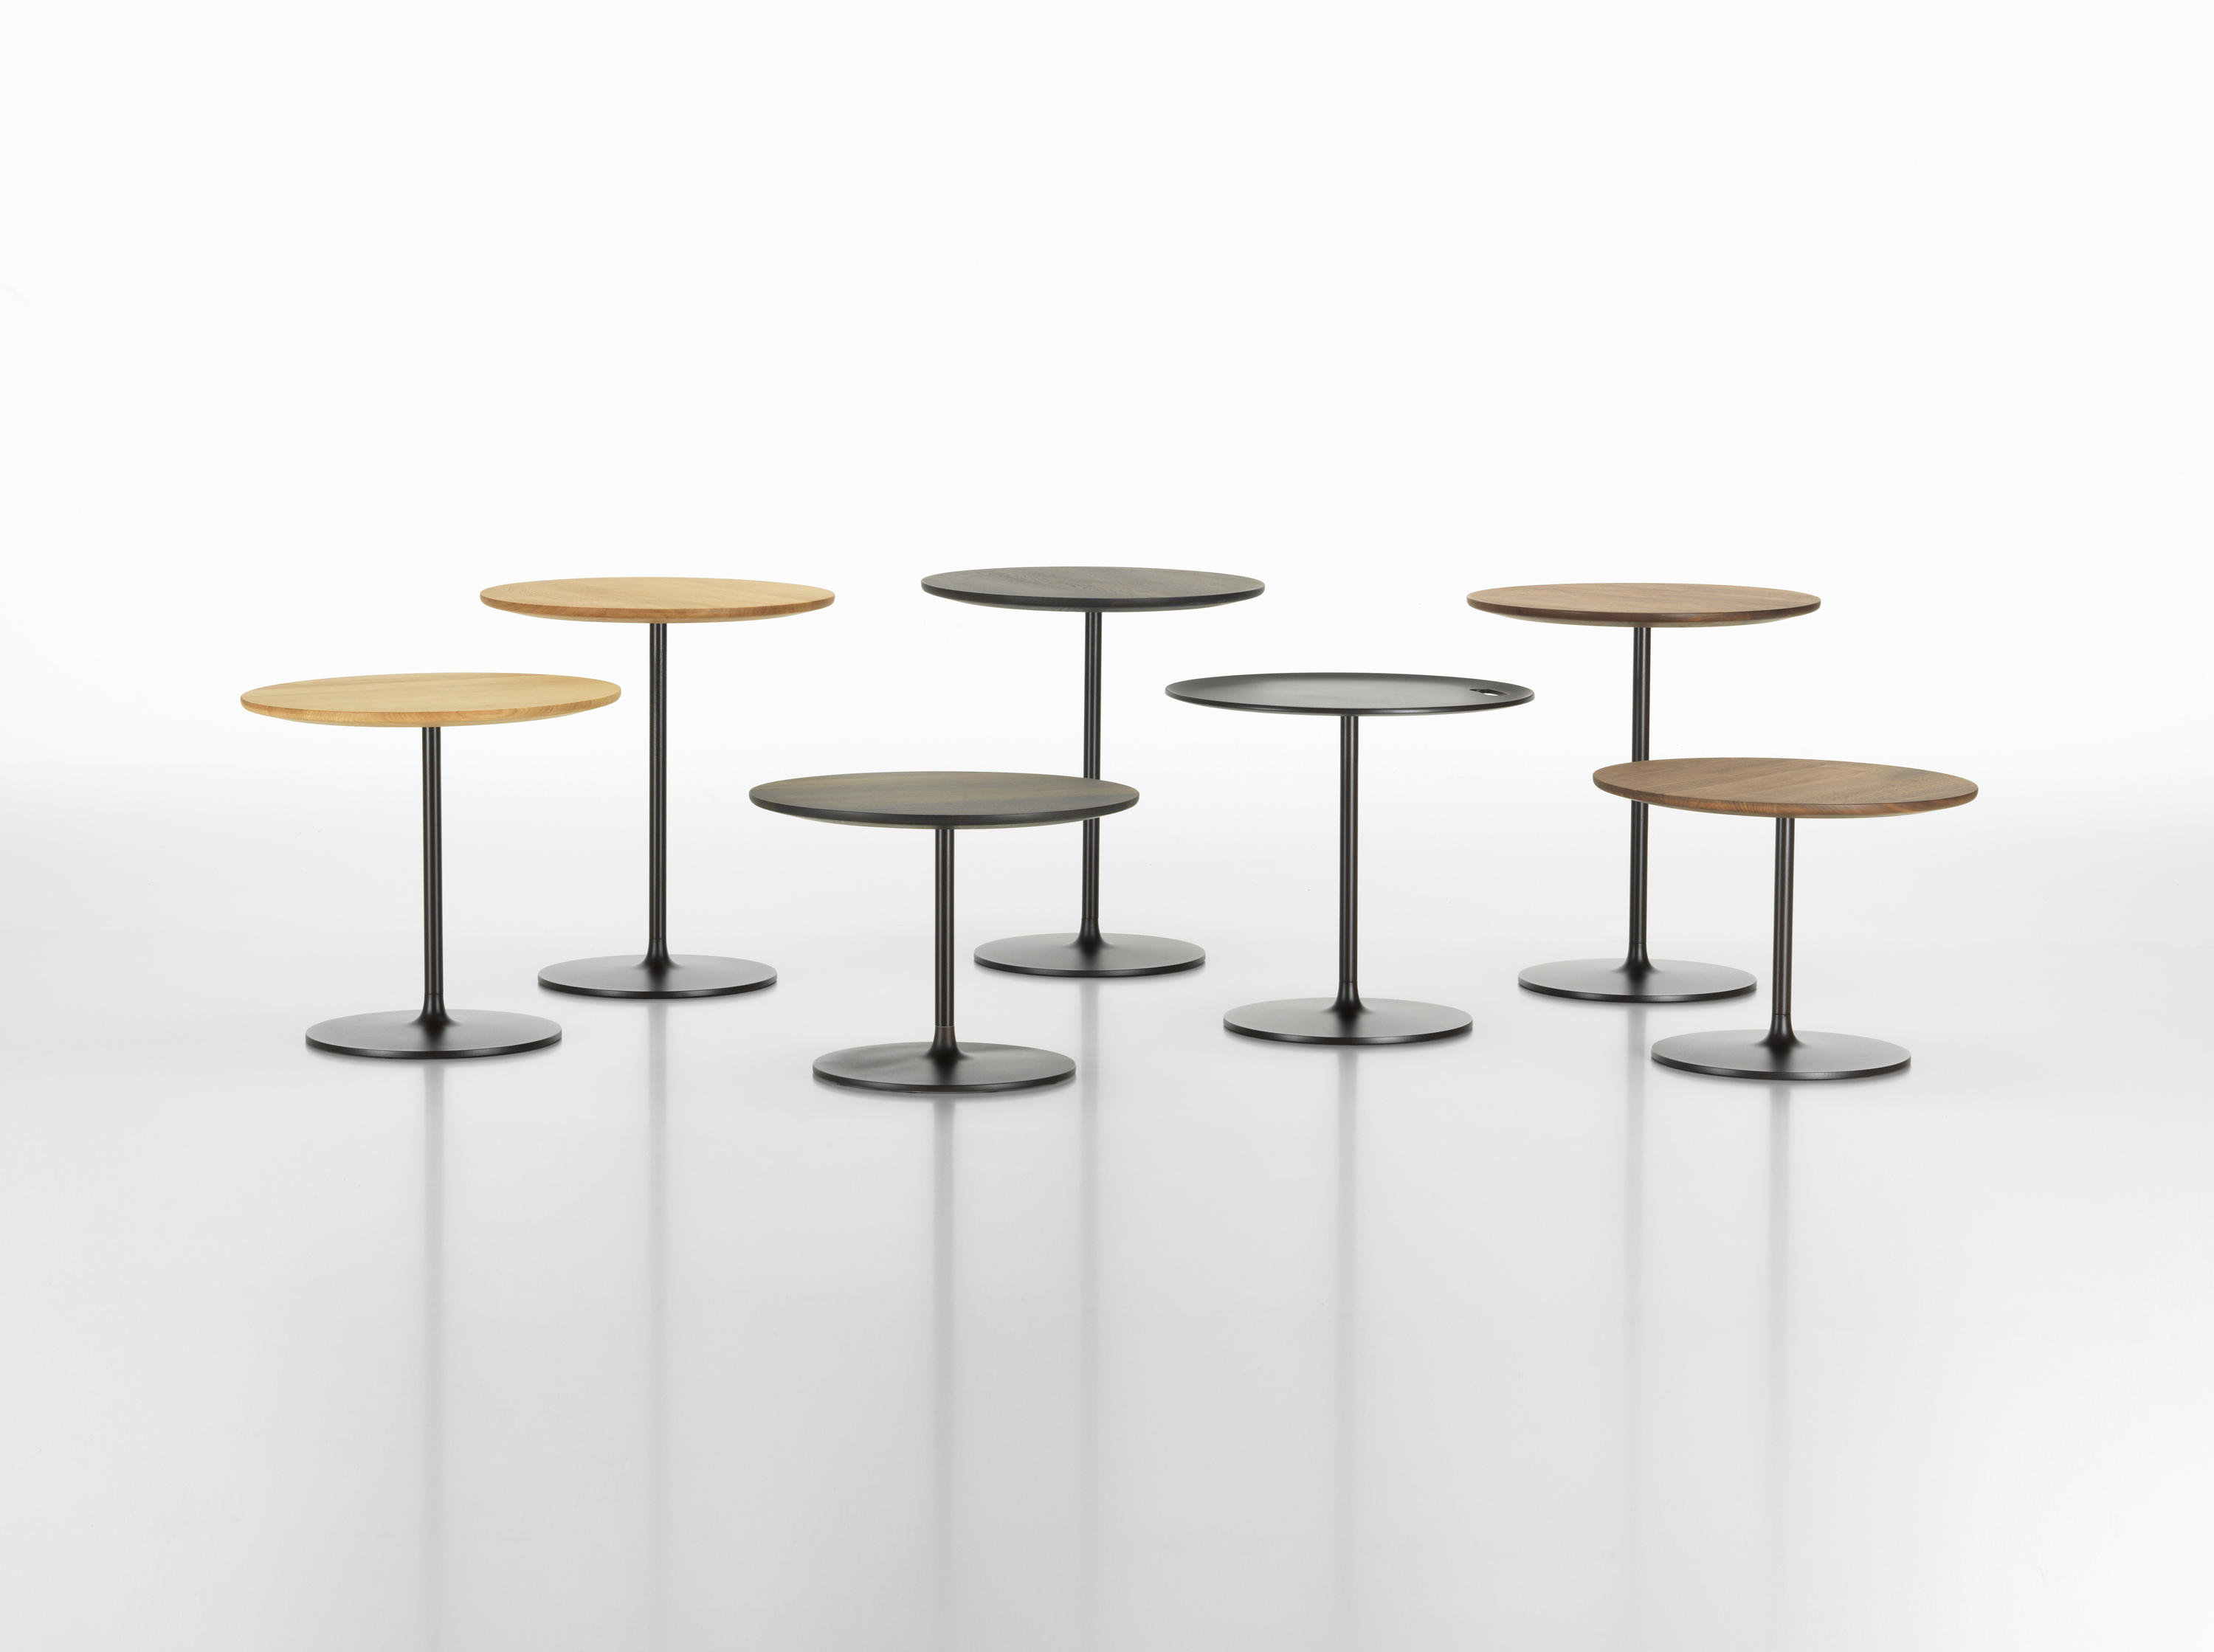 occasional low table side tables from vitra architonic. Black Bedroom Furniture Sets. Home Design Ideas